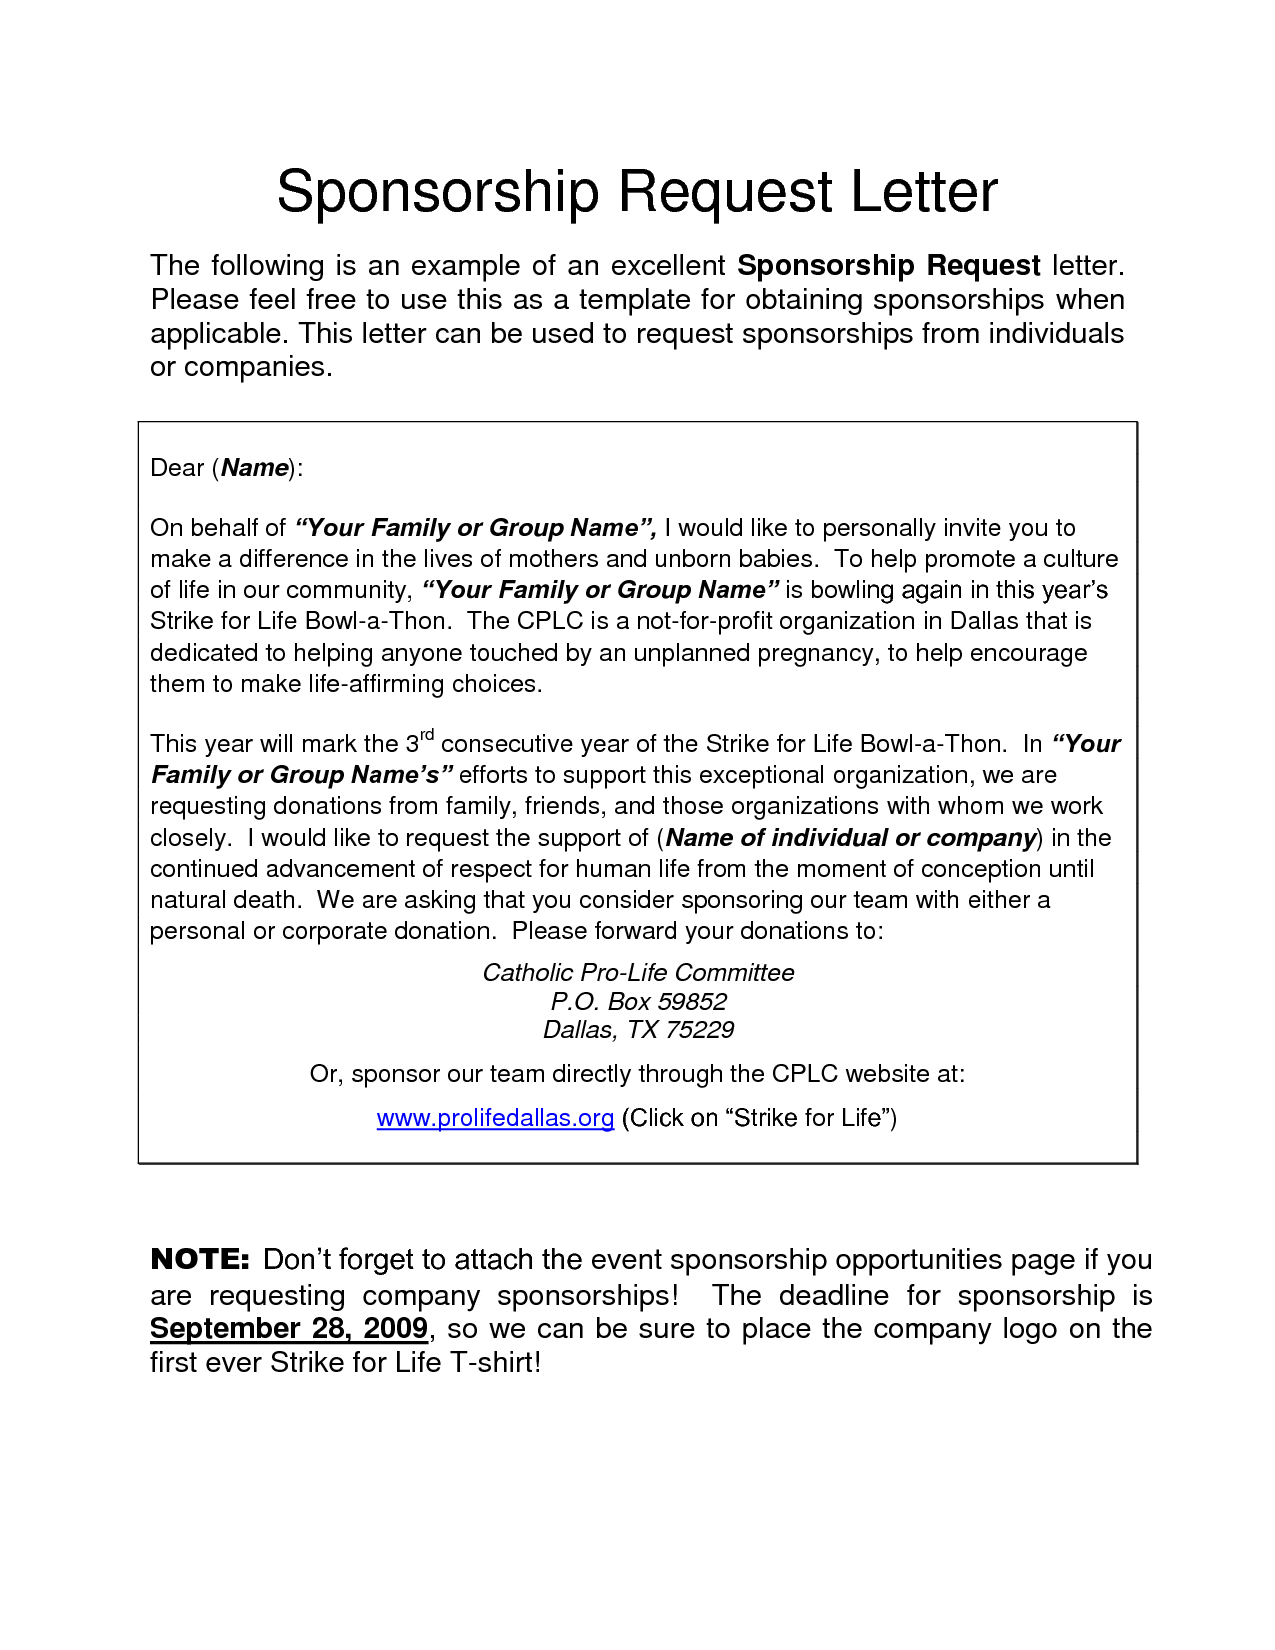 Corporate sponsorship request letter charity donation free sample corporate sponsorship request letter charity donation free sample letters spiritdancerdesigns Image collections